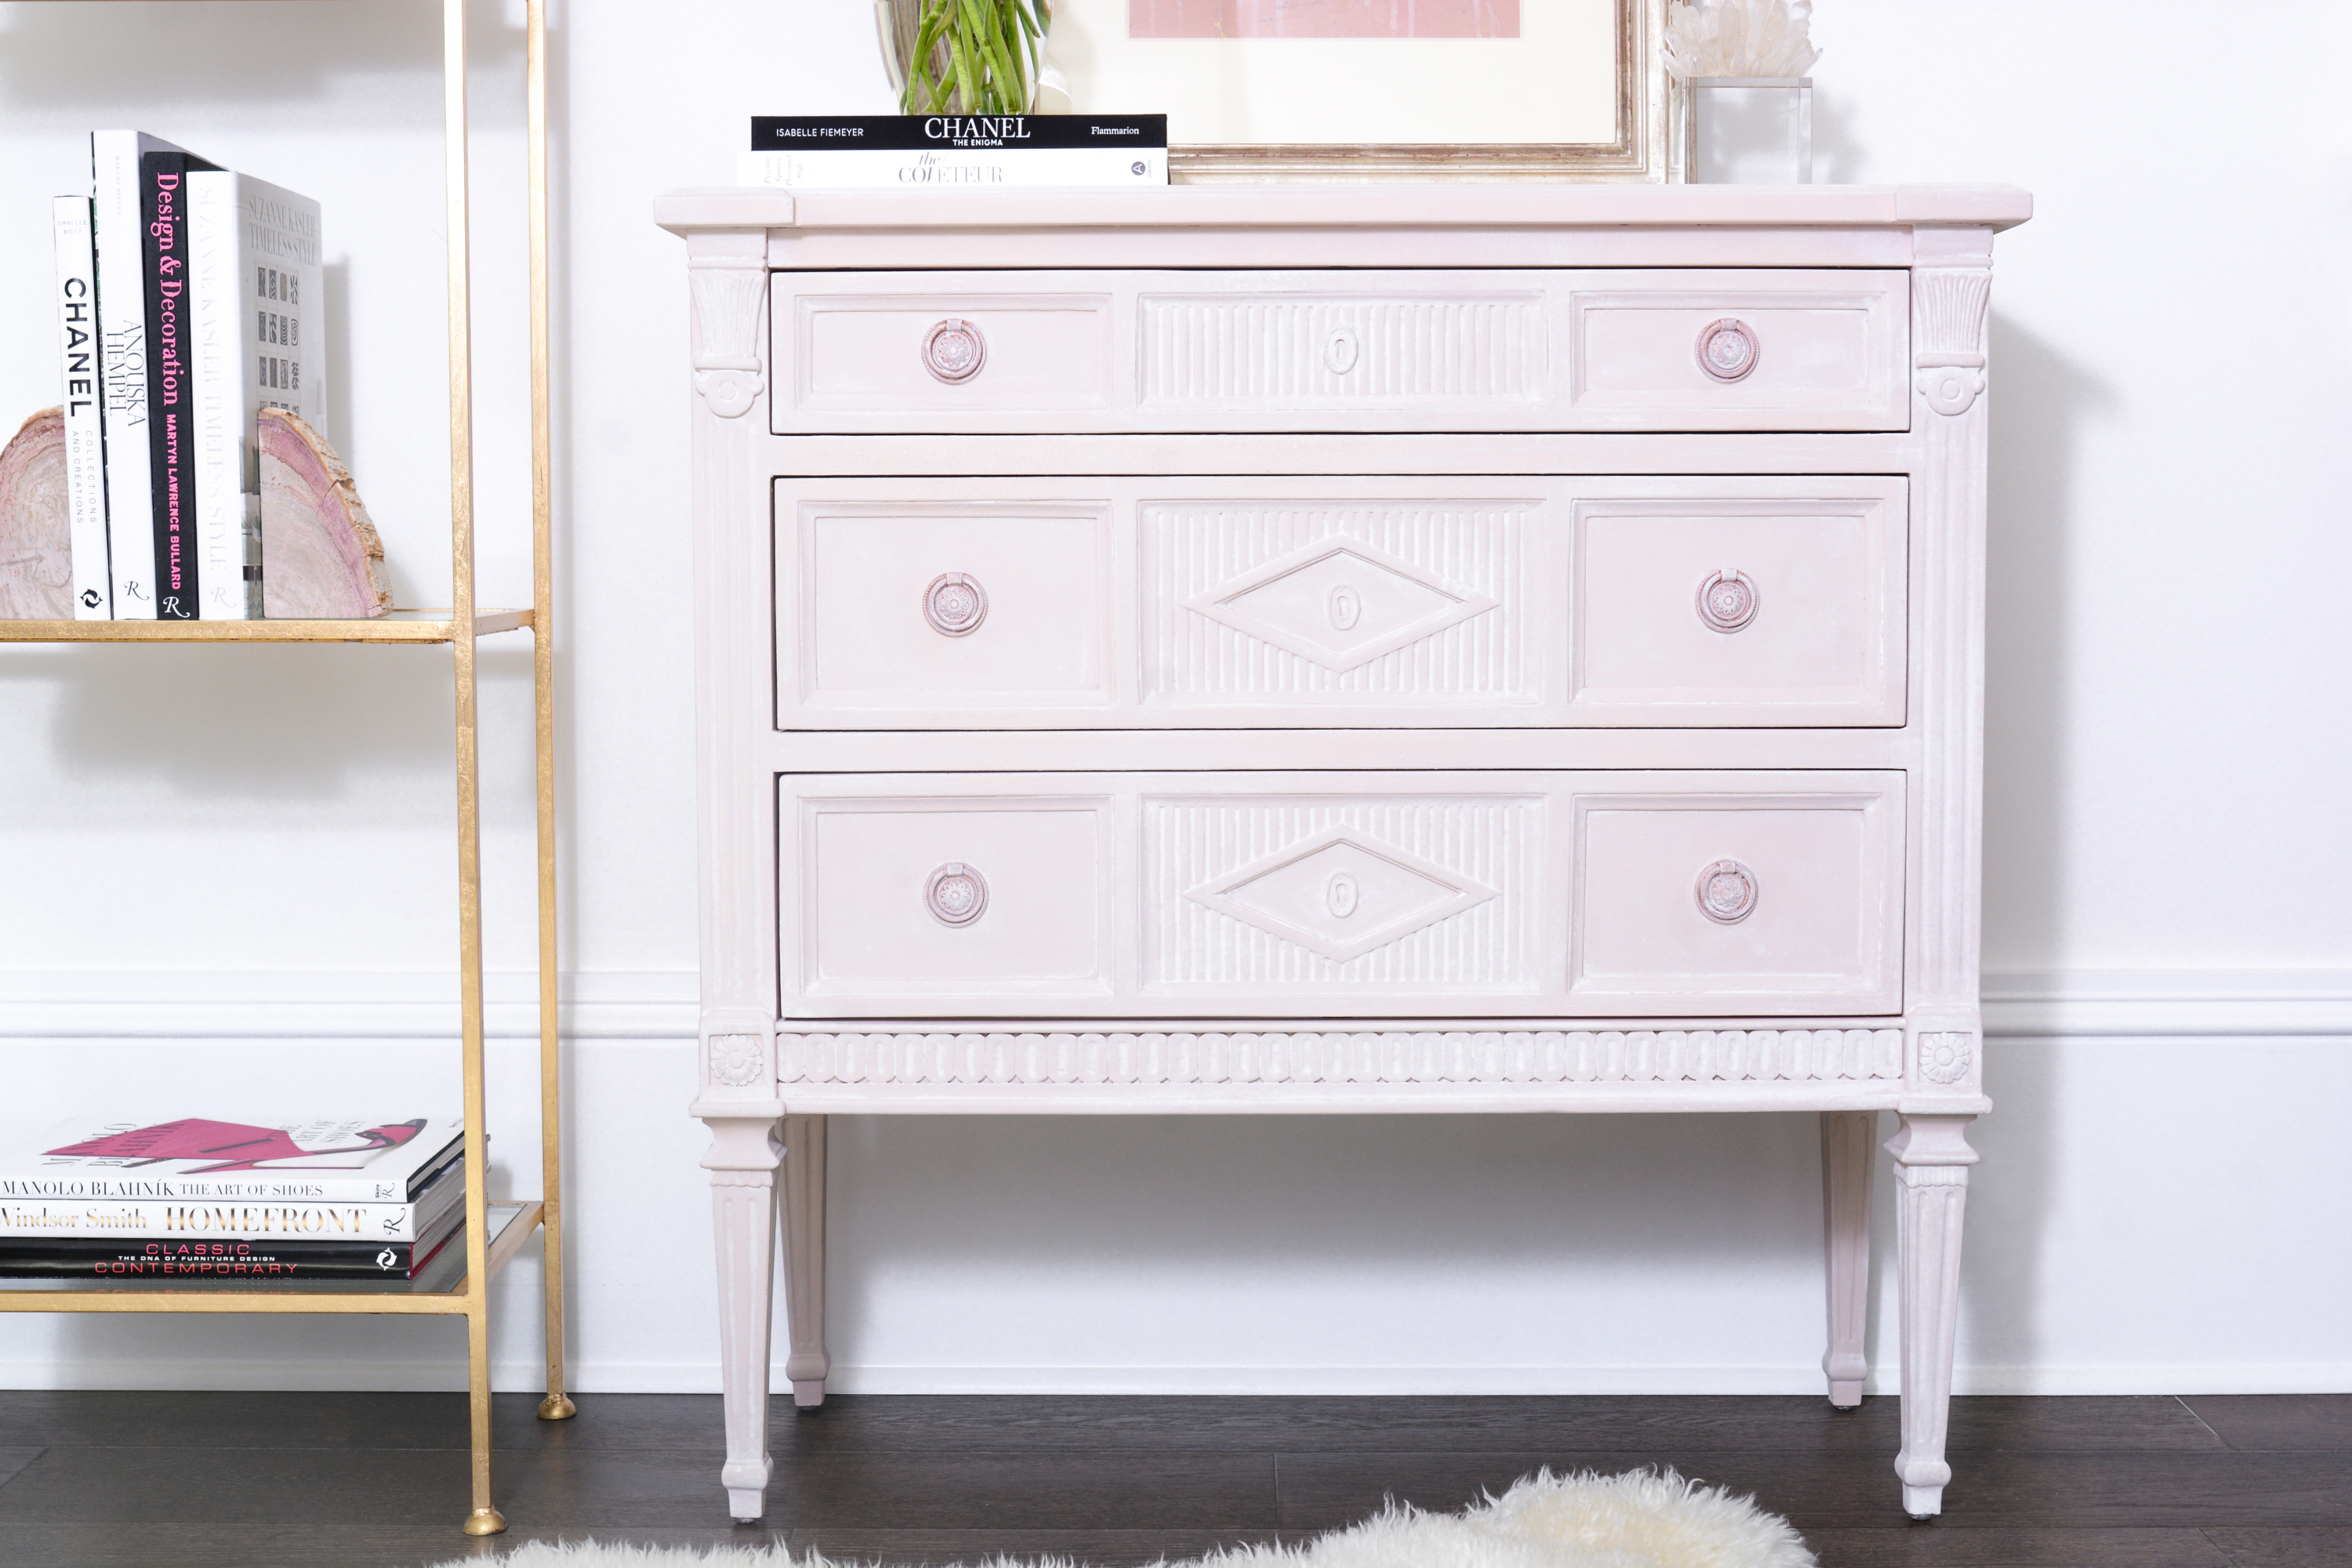 Upcycling Furniture Made Simple With New Jolie Paint The